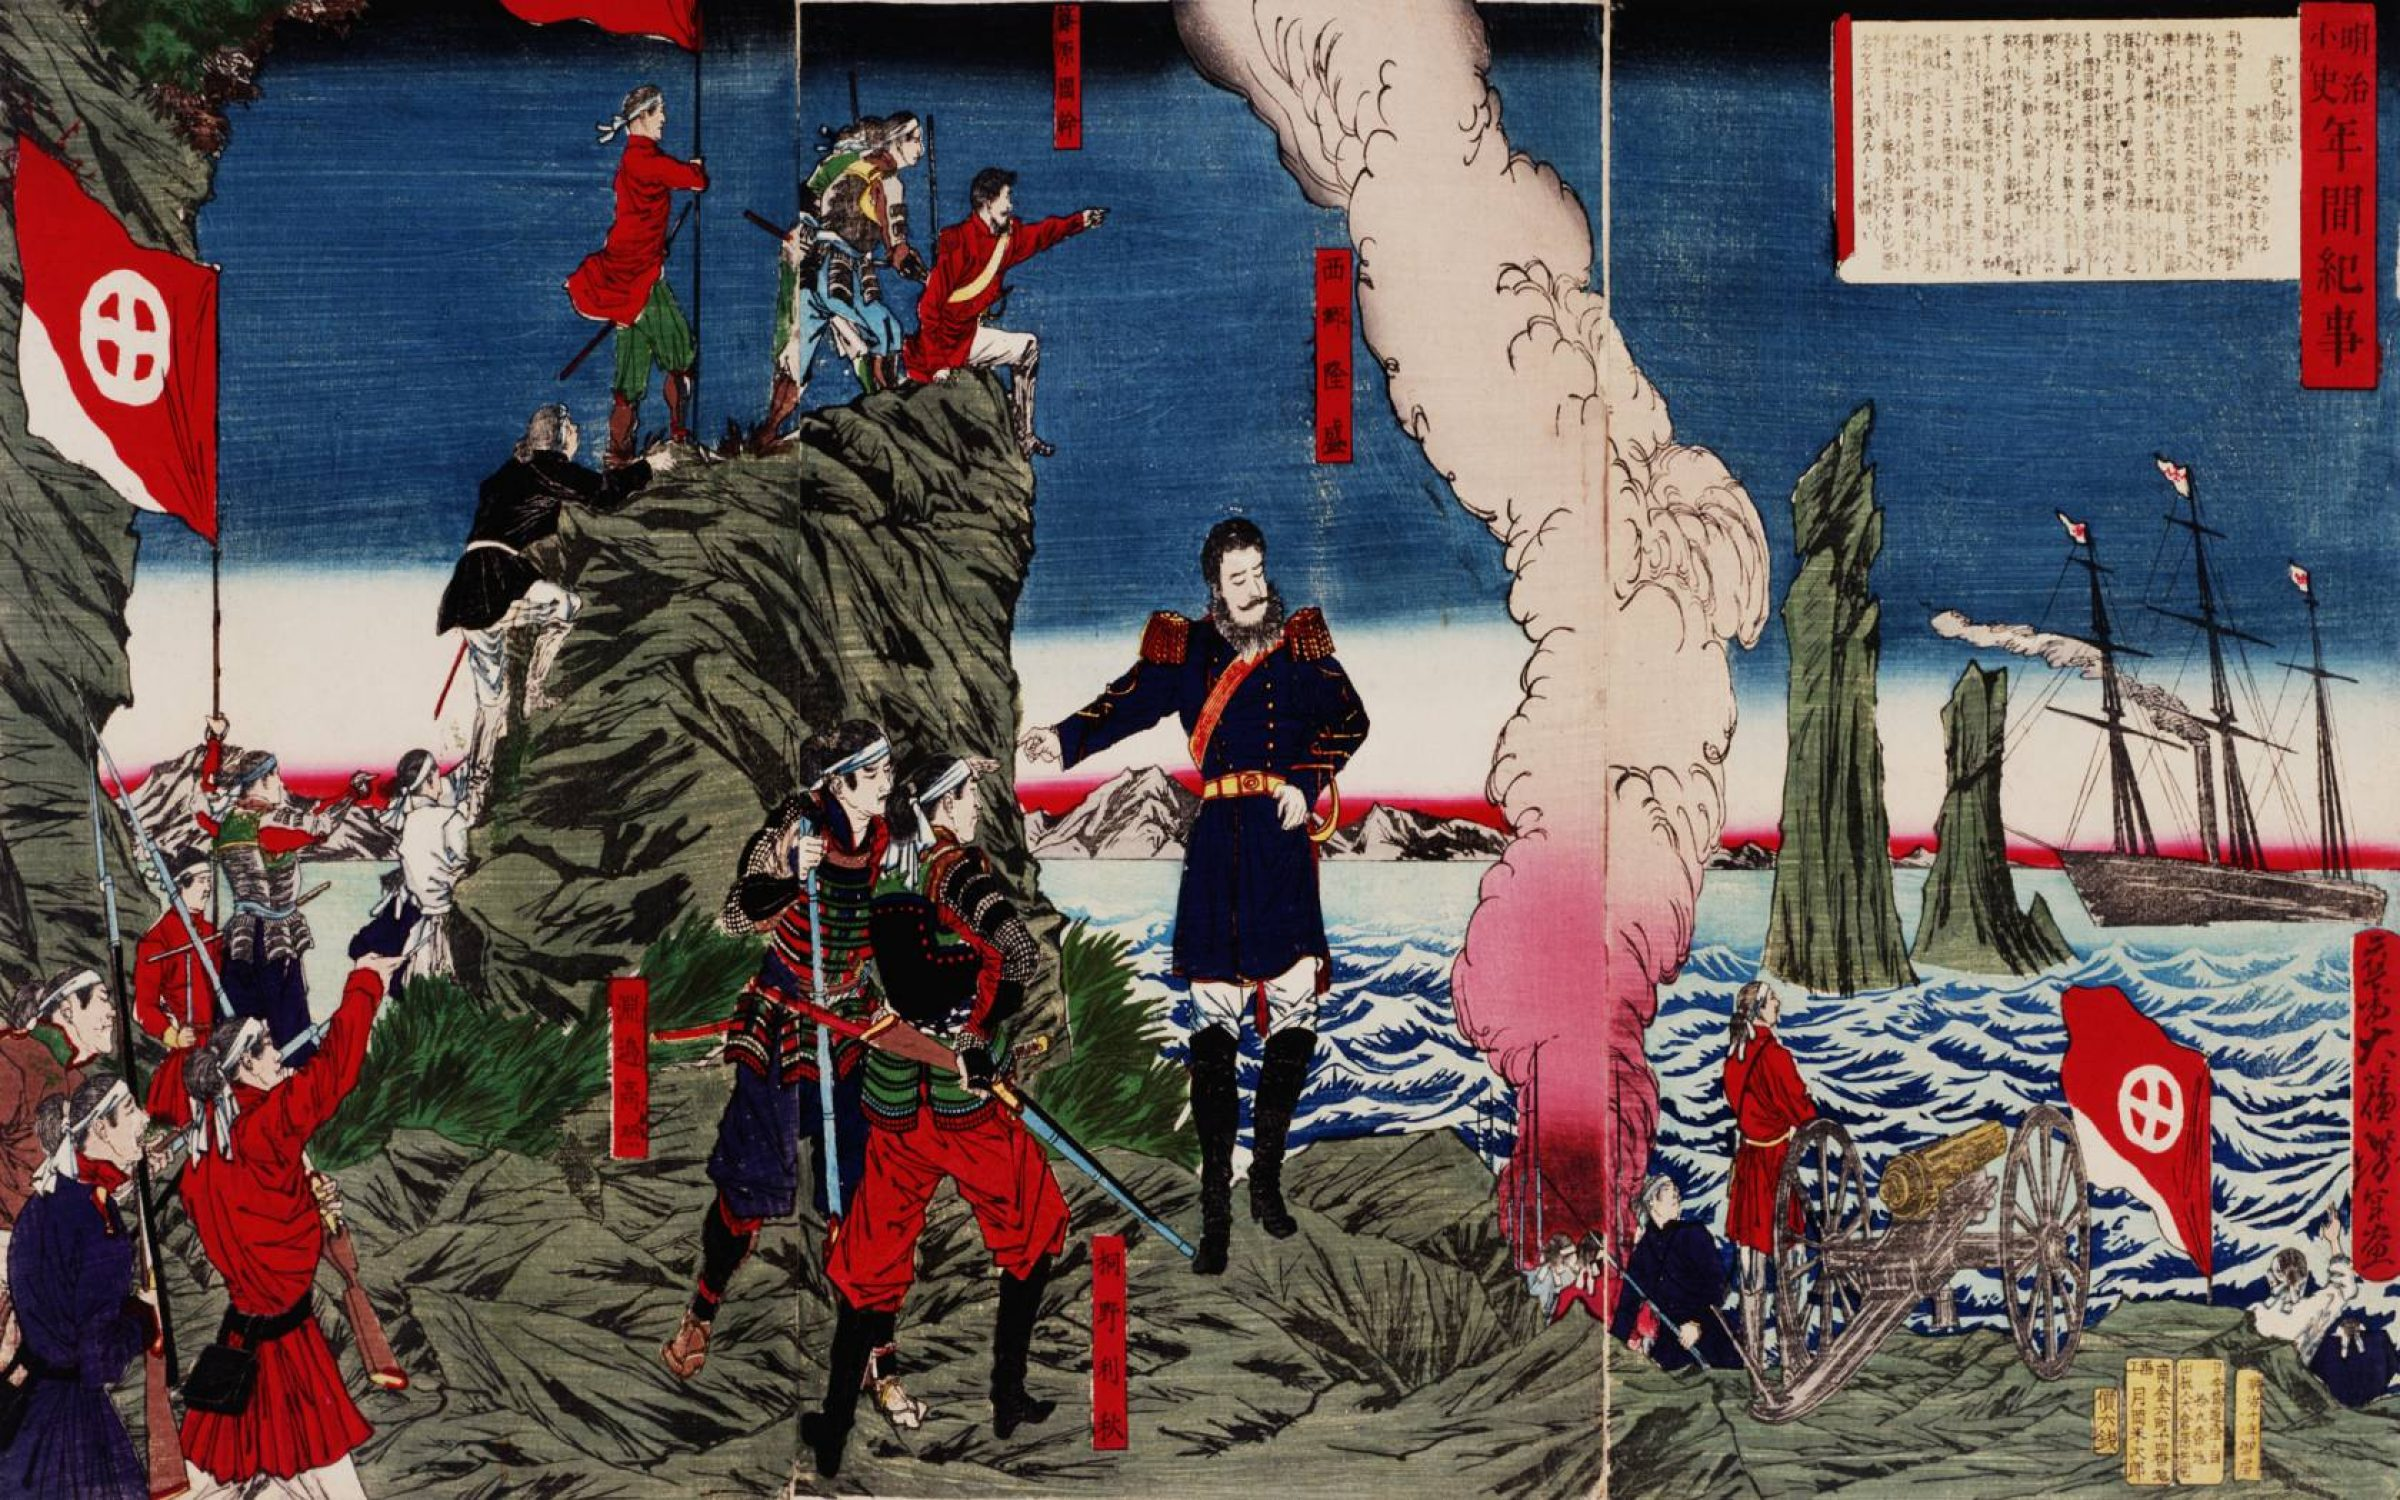 In 1877 the nationally revered hero of the Meiji Restoration, Saigo Takamori, rebelled against the government that he had helped to establish. Here his samurai army was eventually defeated by the government's modern conscript army. Credit: Asian Art & Archaeology, Inc./CORBIS/Corbis via Getty Images